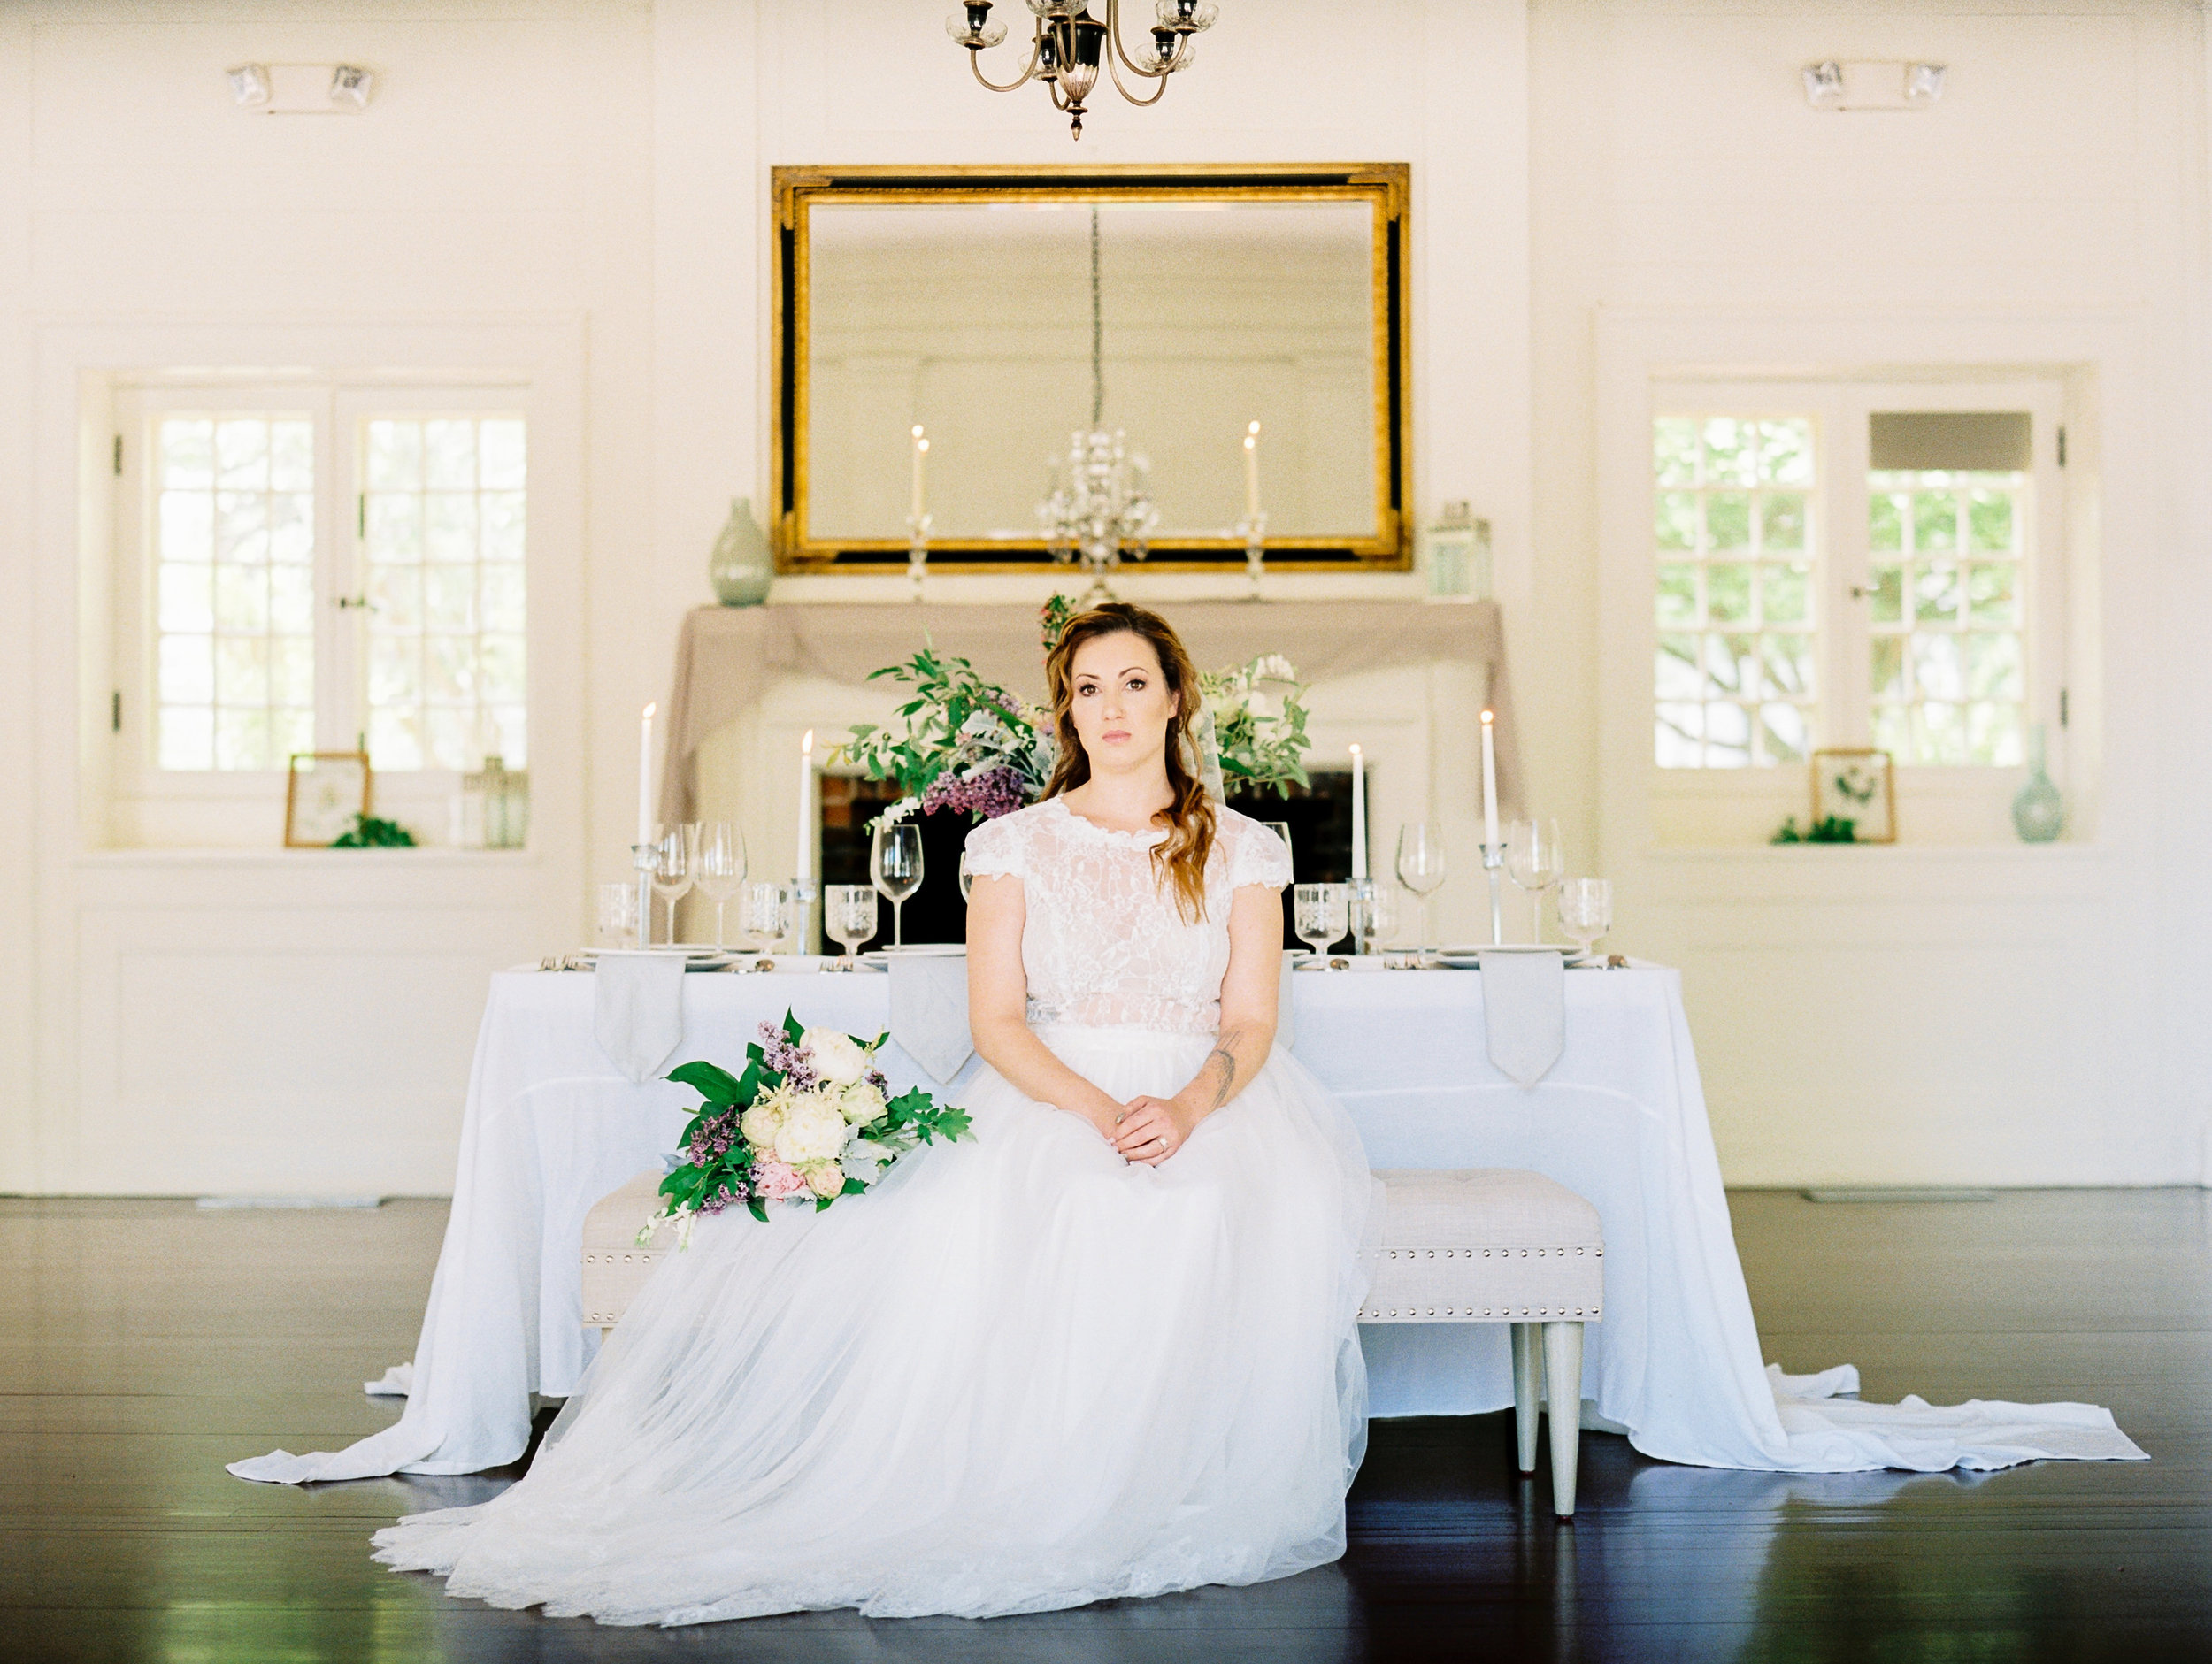 Bride with Bouquet Lavender, Greenery, White